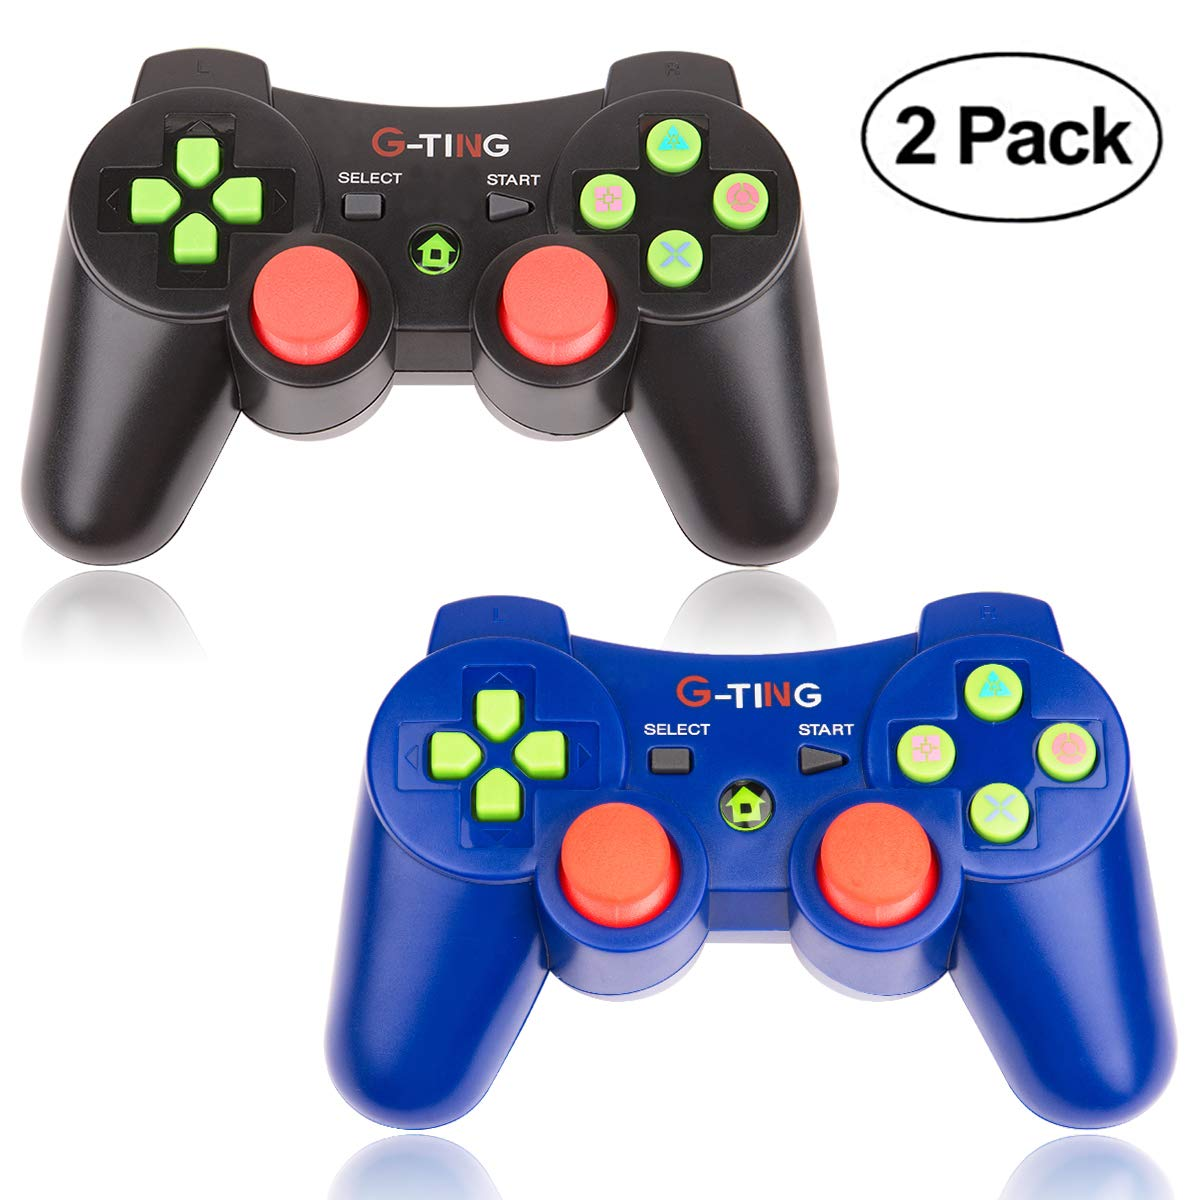 PS3 Controller Wireless 2 Pack Double Shock Gamepad for Playstation 3 Remotes, Sixaxis Wireless PS3 Controller with Charging Cable (Blue and Black)